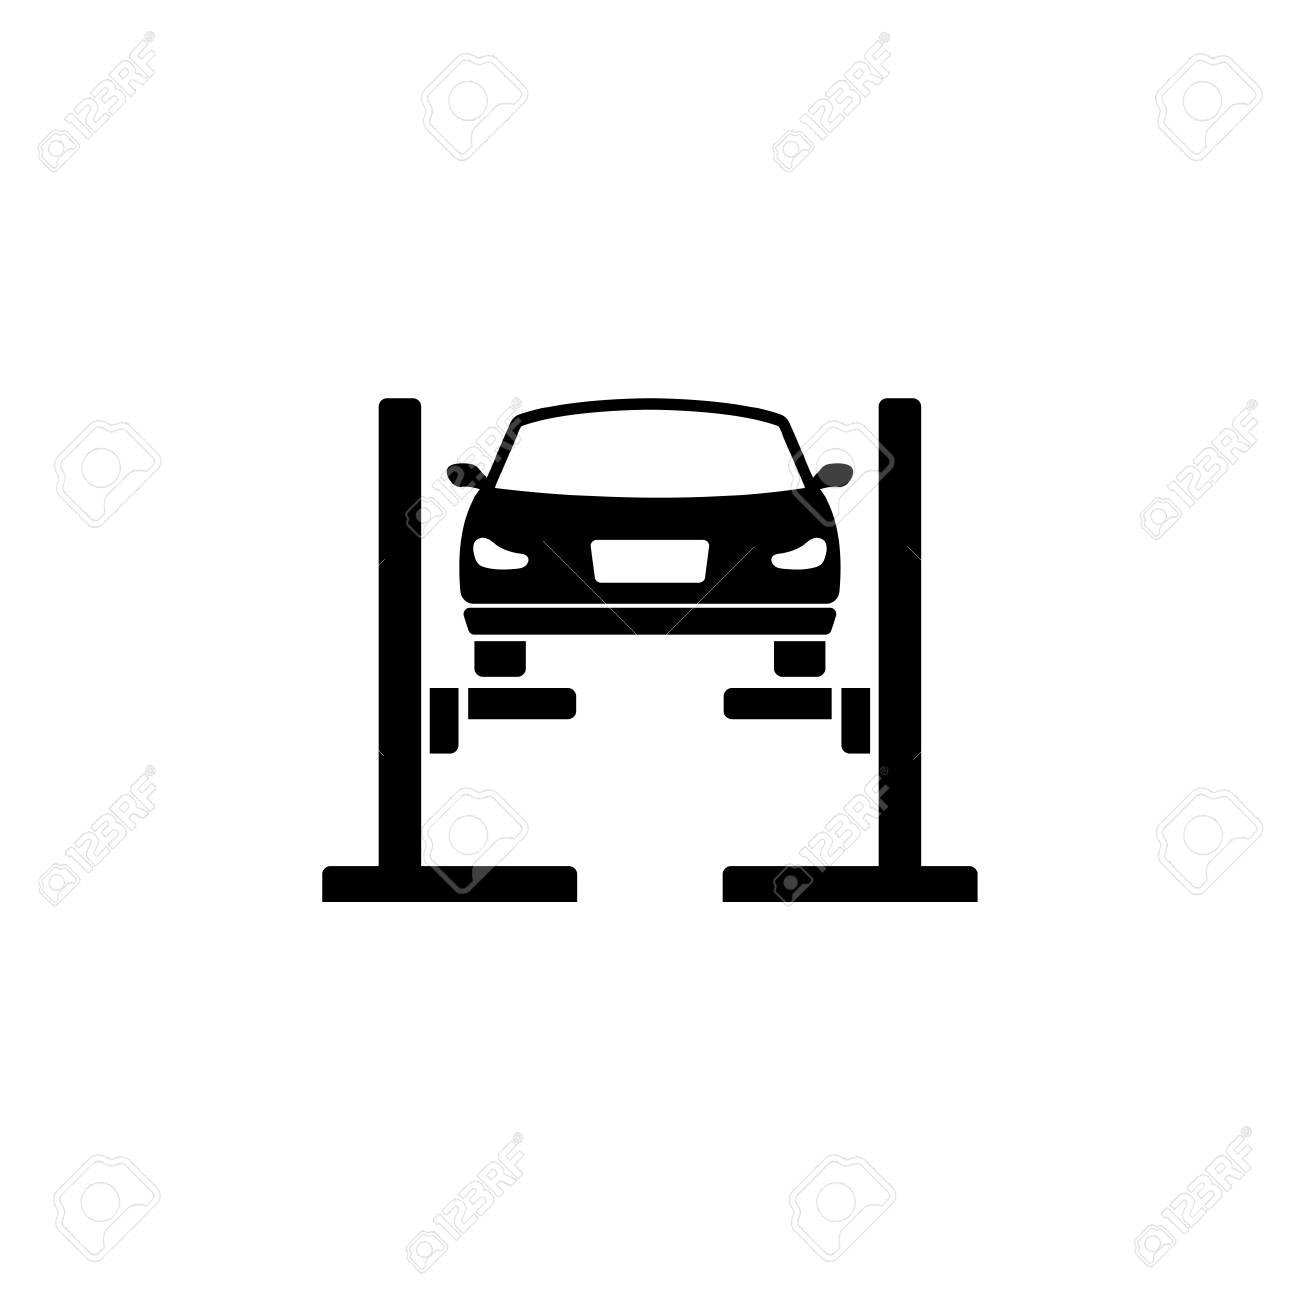 Car Lift. Filled Car Service. Flat Vector Icon. Simple black...